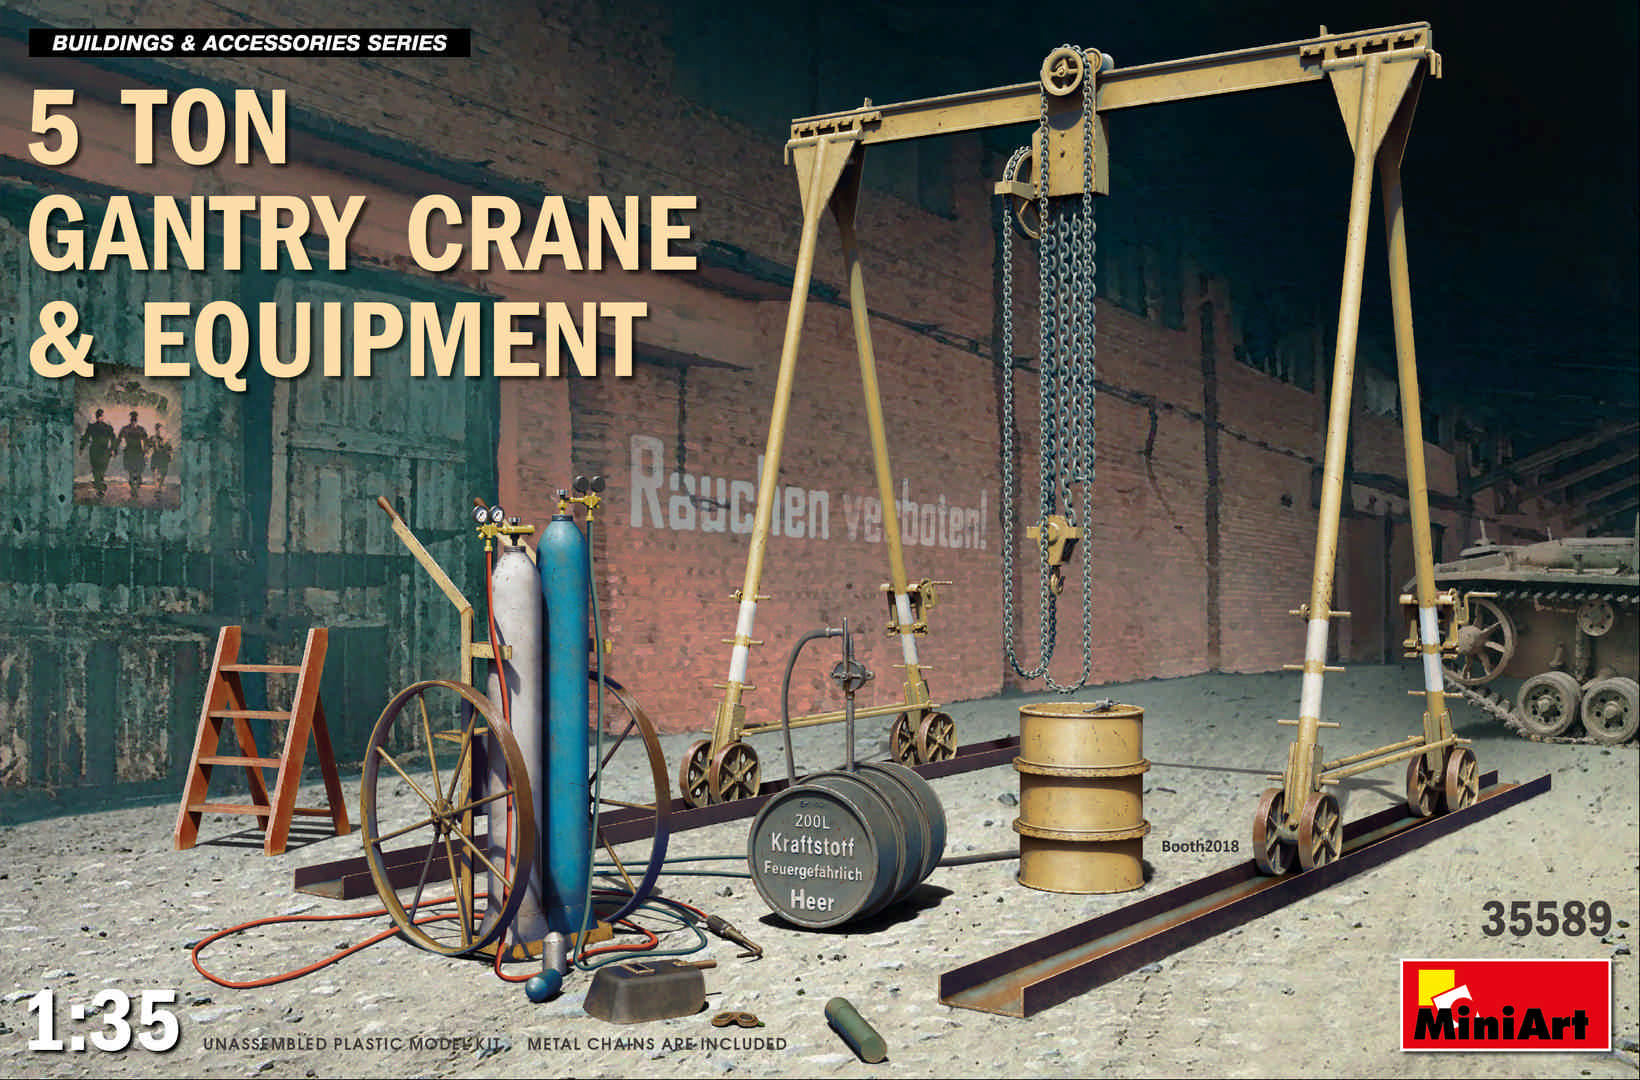 MiniArt 5 Ton Gantry Crane & Equipment